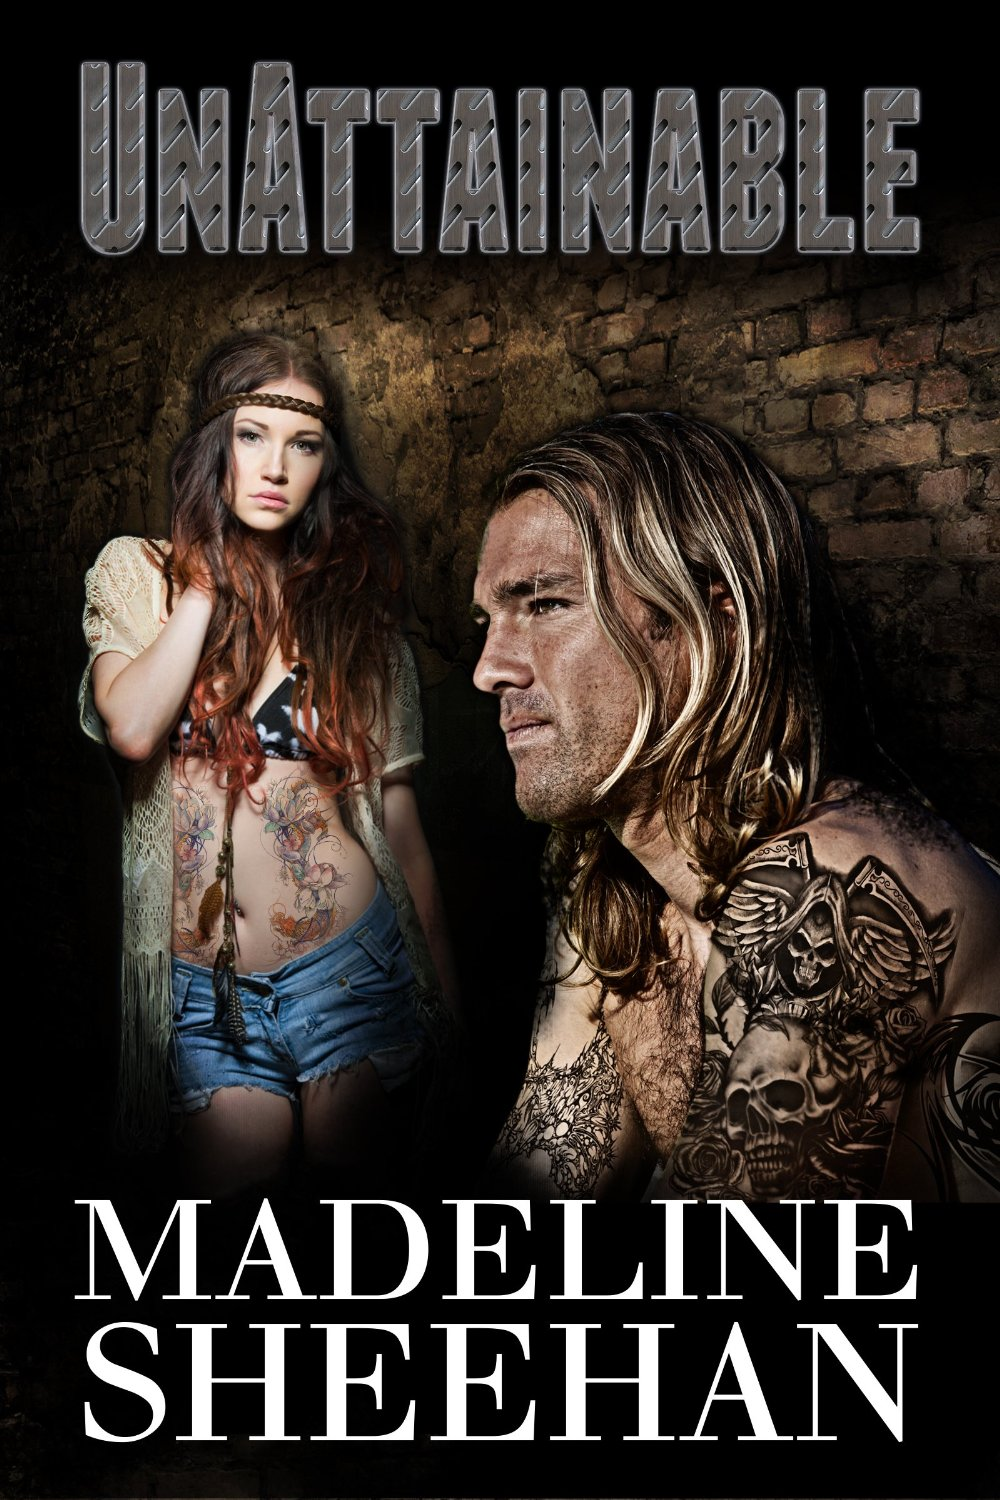 Review – Unattainable by Madeline Sheehan